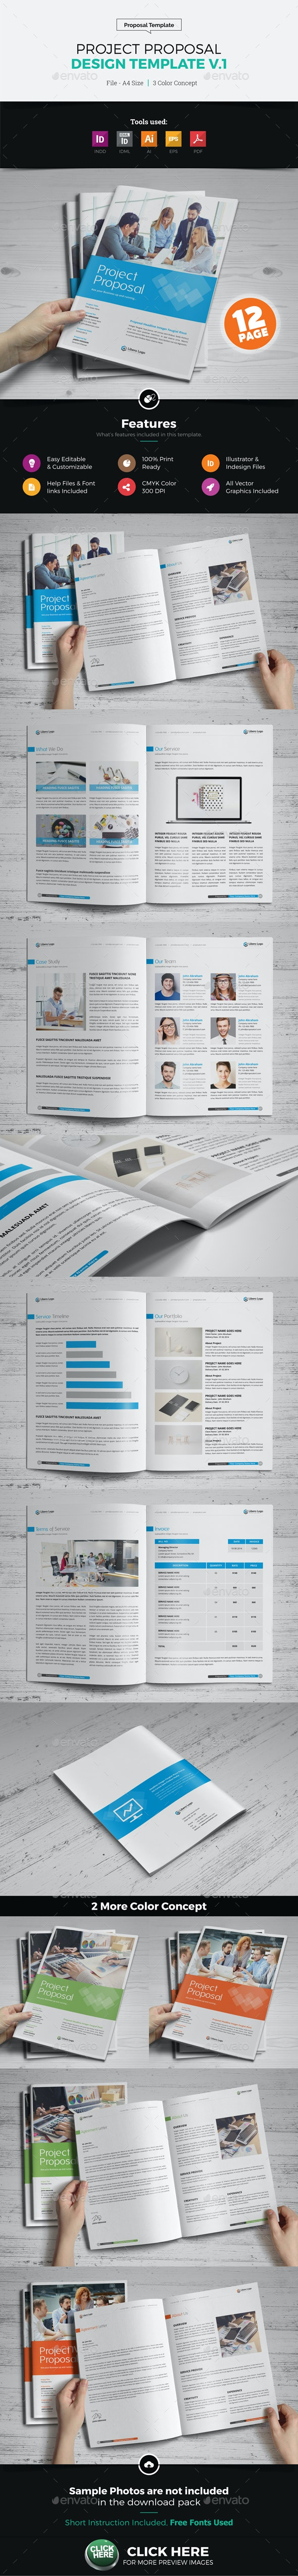 Project Business Proposal Design v1 - Proposals & Invoices Stationery